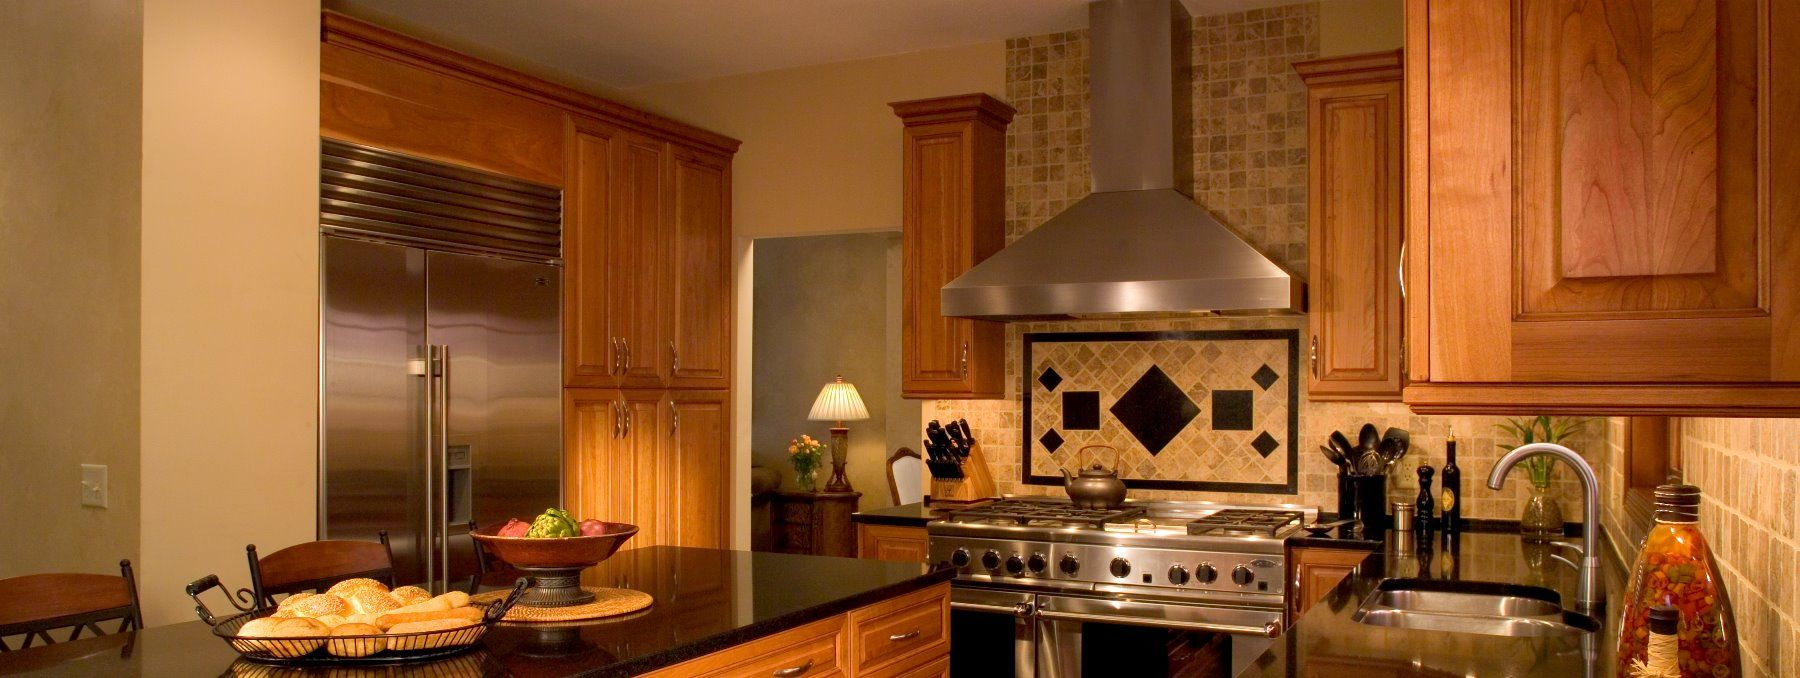 Kitchen Hood Idea Kitchen Range Hood Kitchen Hoods Luxury Kitchen